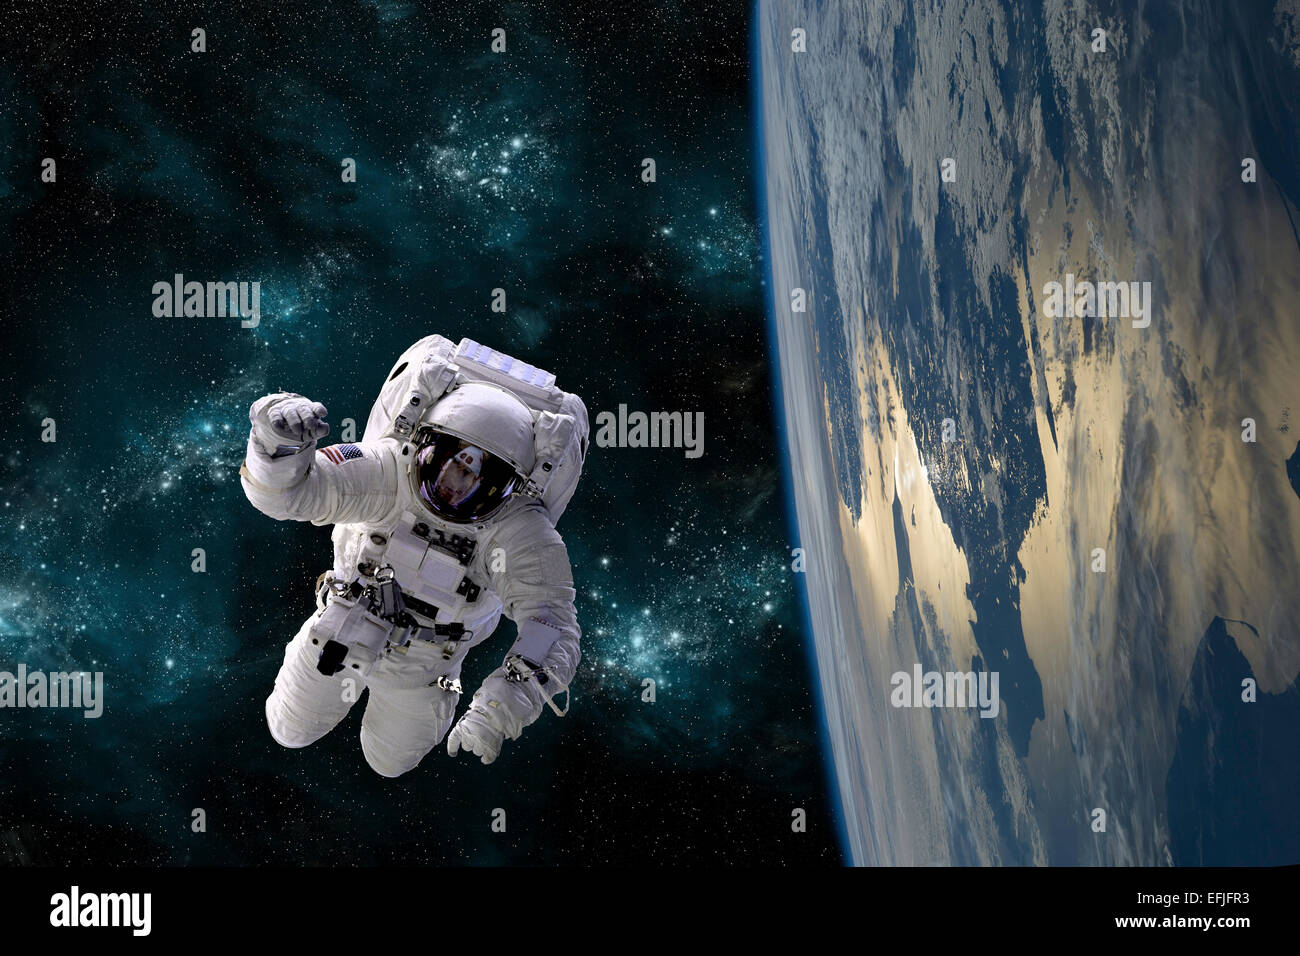 an astronaut floating in space - photo #7